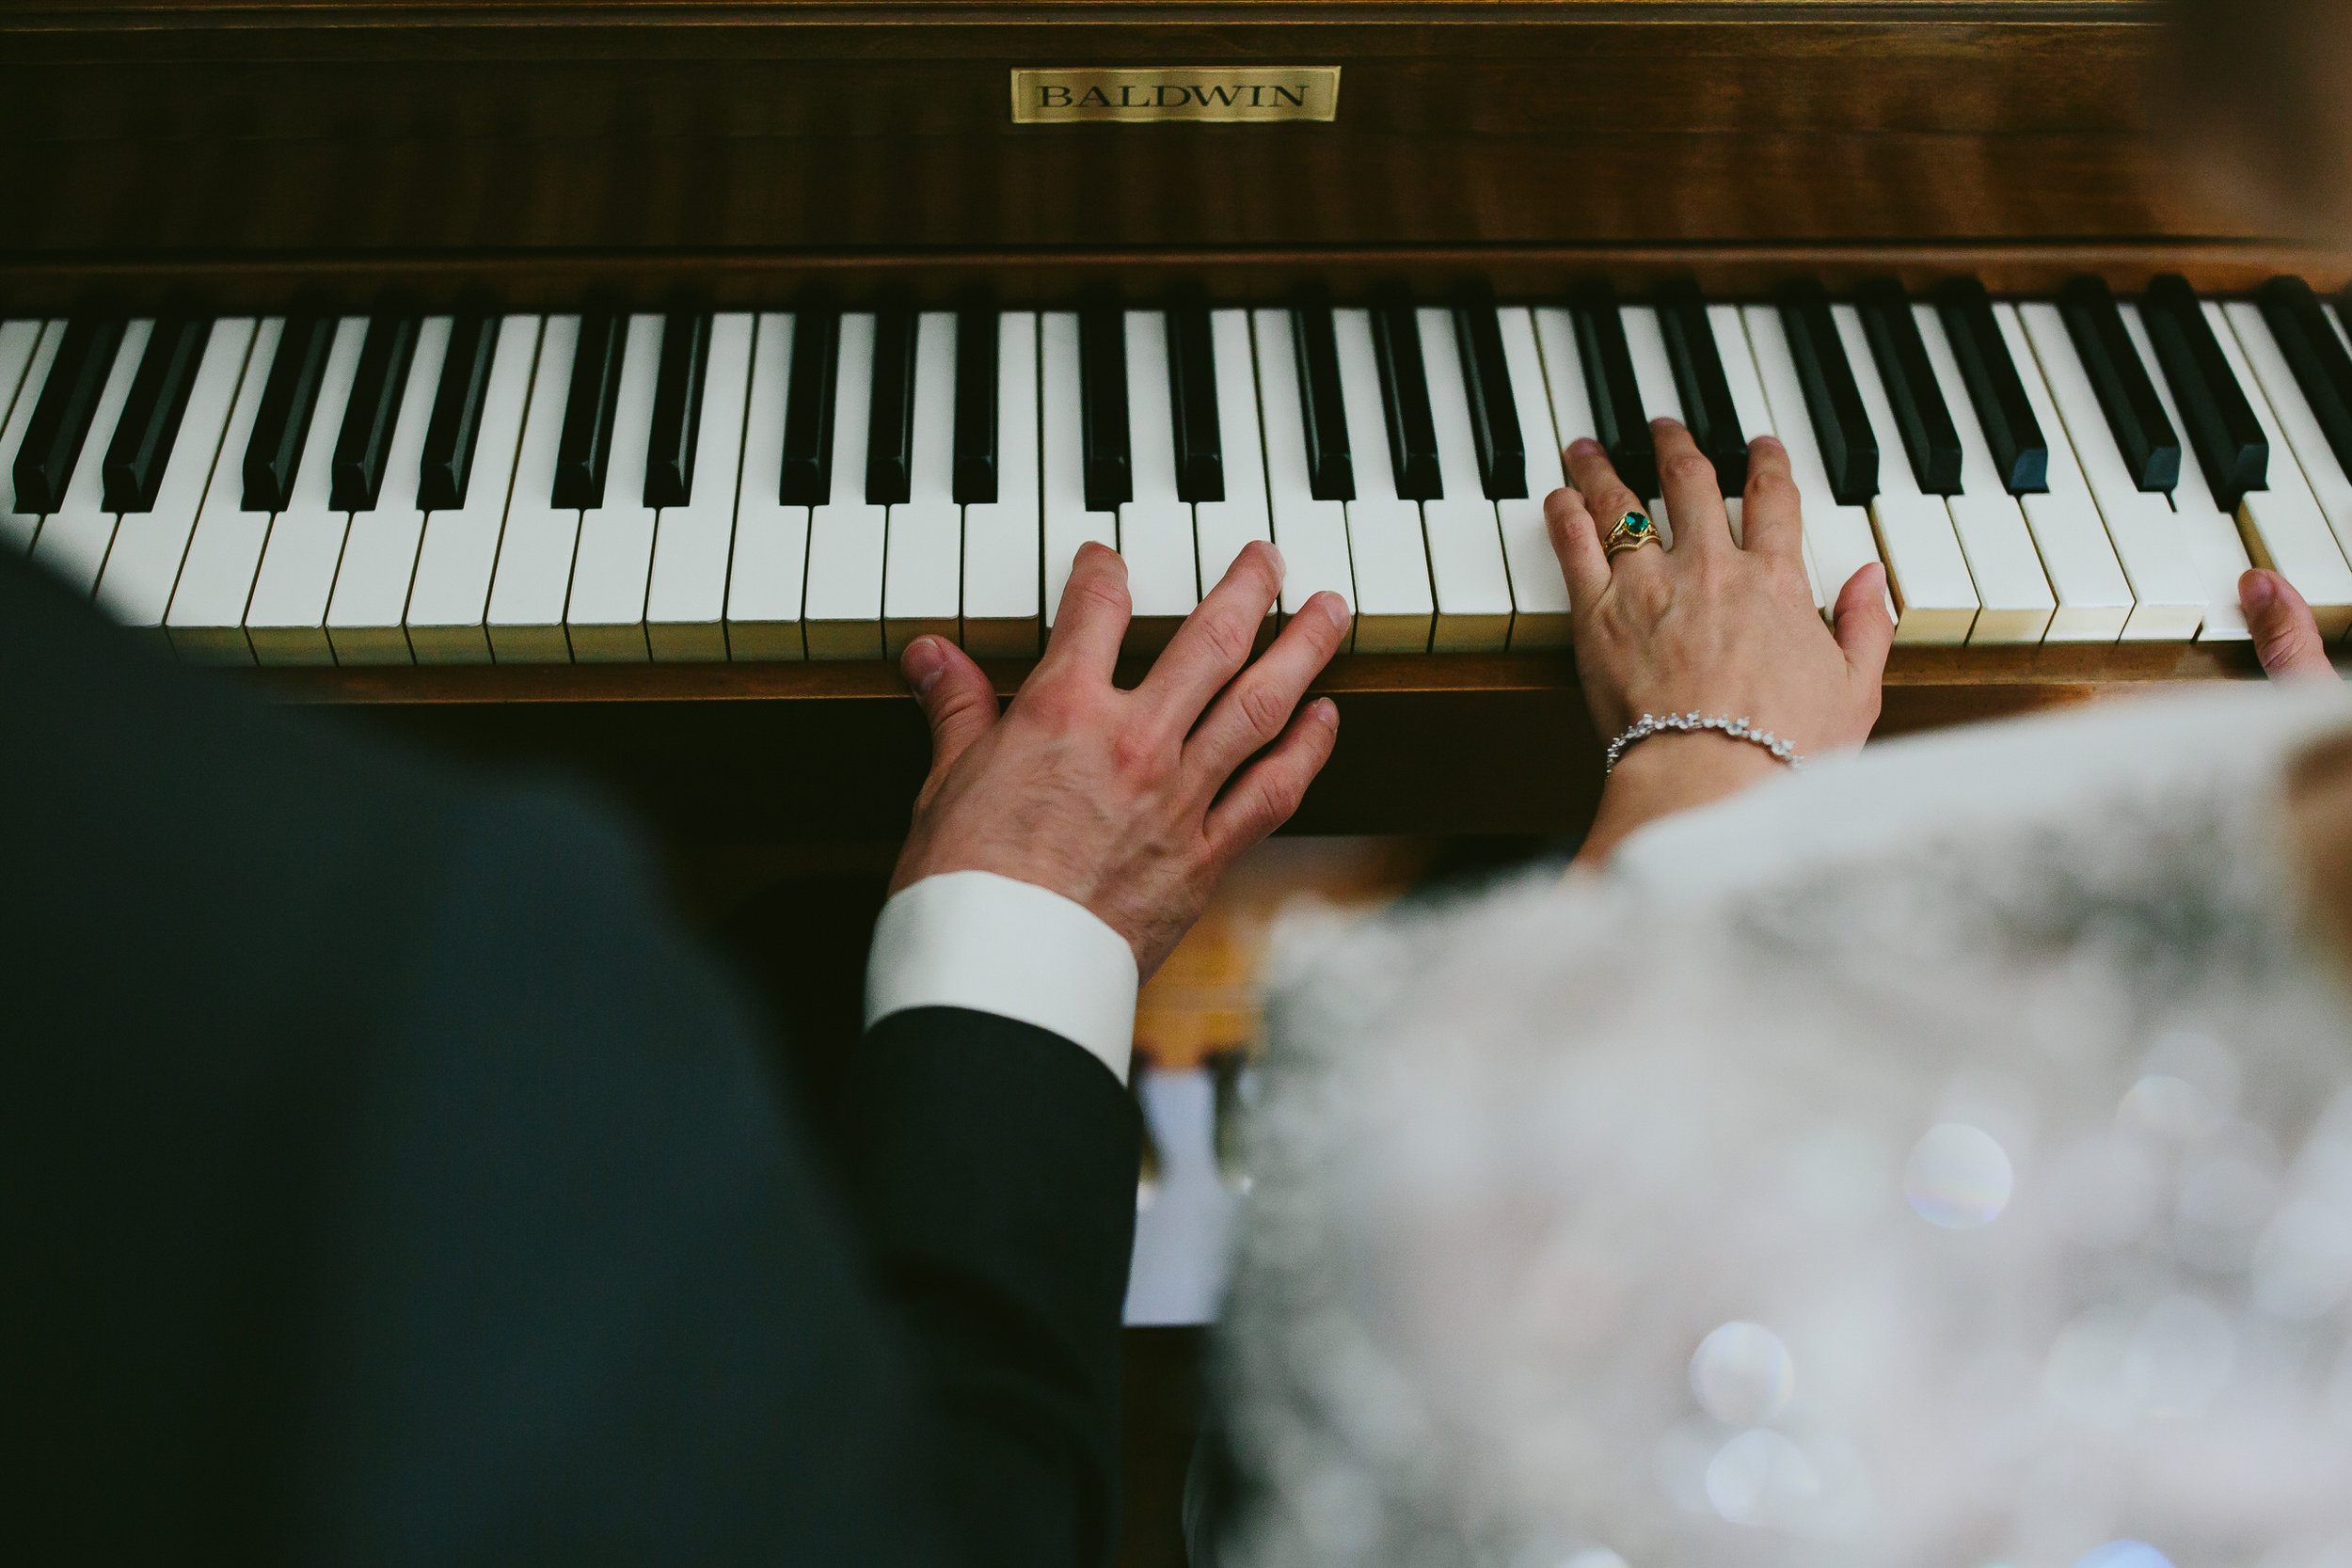 bride_and_groom_in_home_session_wedding_fort_lauderdale_photographer_steph_lynn_photo-2.jpg